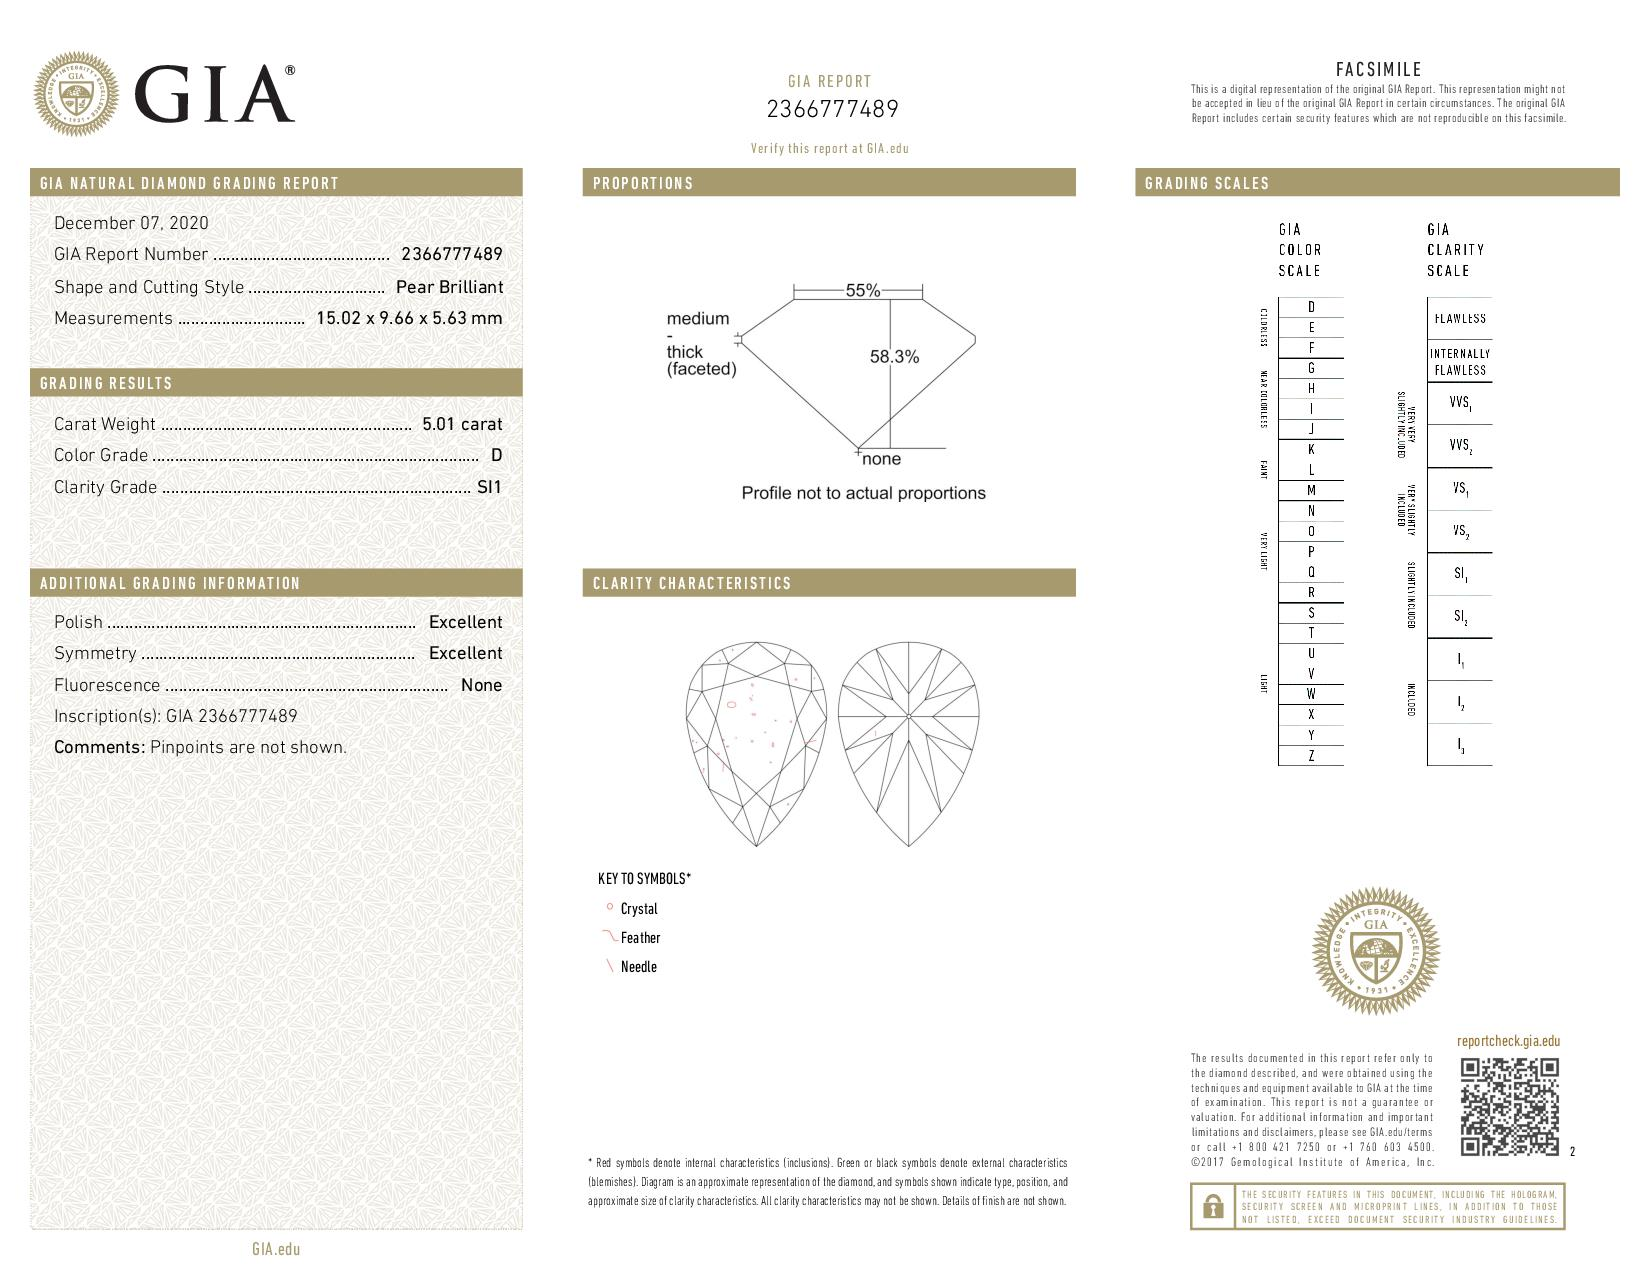 This is a 5.01 carat pear shape, D color, SI1 clarity natural diamond accompanied by a GIA grading report.